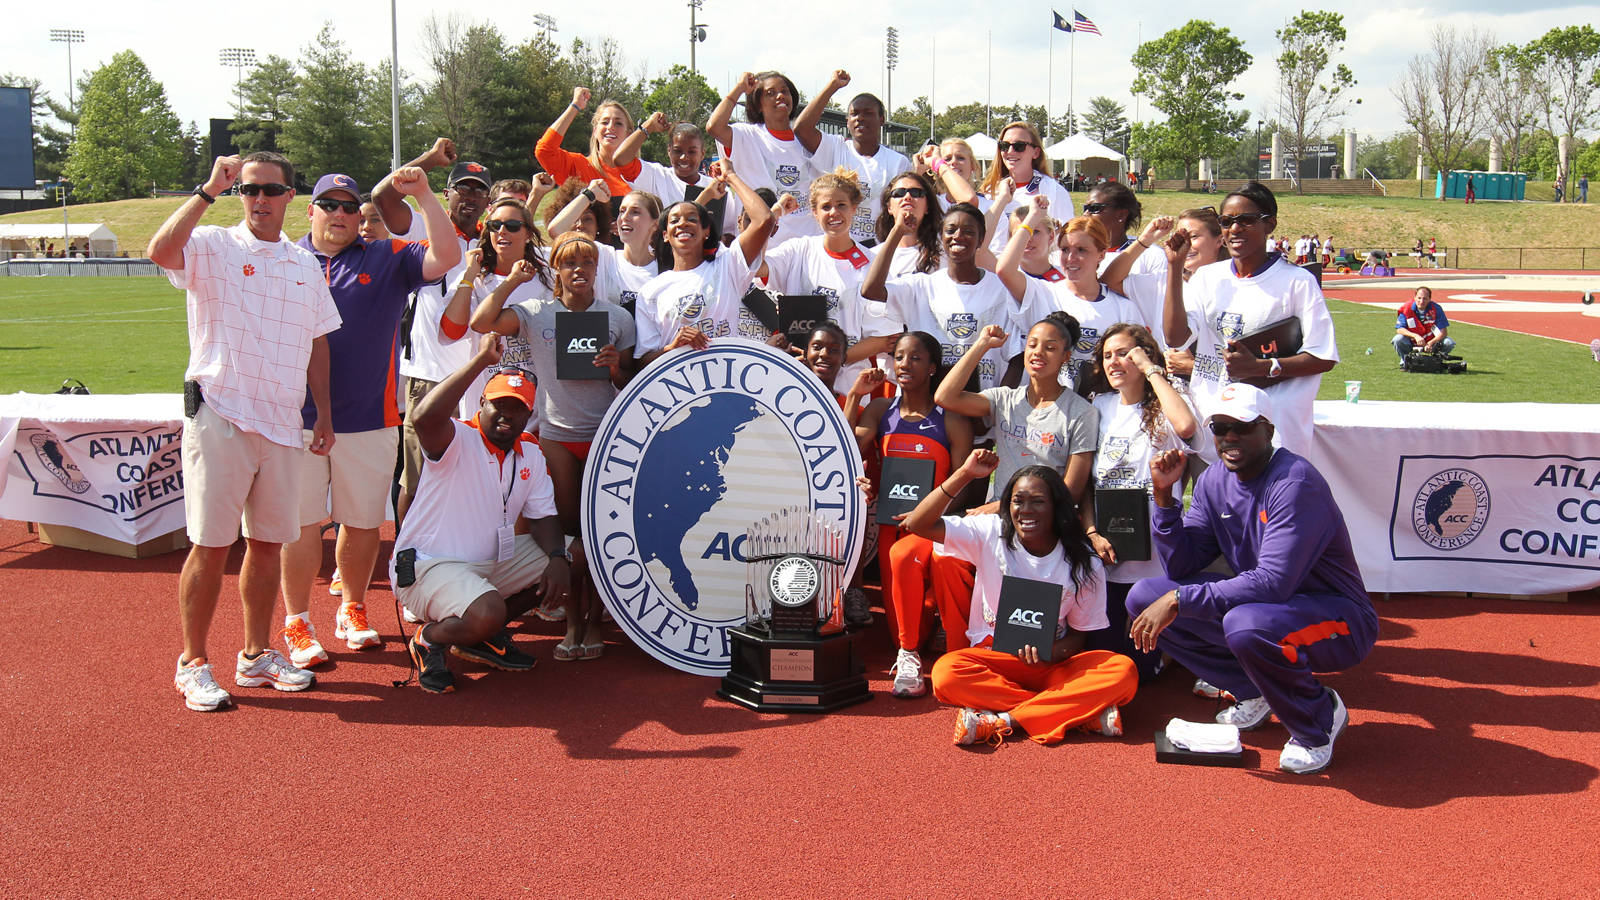 2012 Outdoor Track & Field Season Review